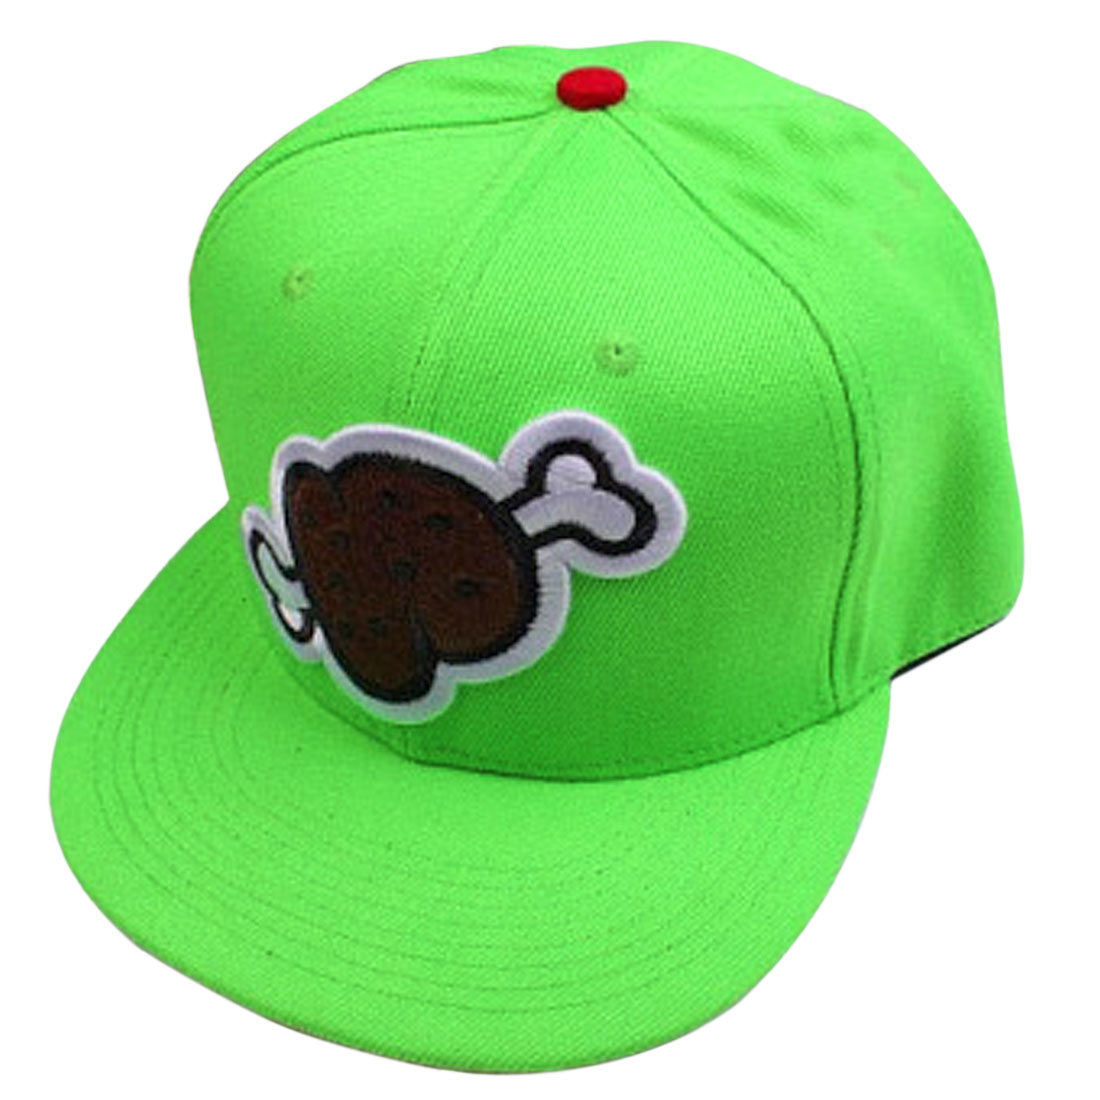 Men Adjustable Strap Bone Embroidery Baseball Hat Light Green Red